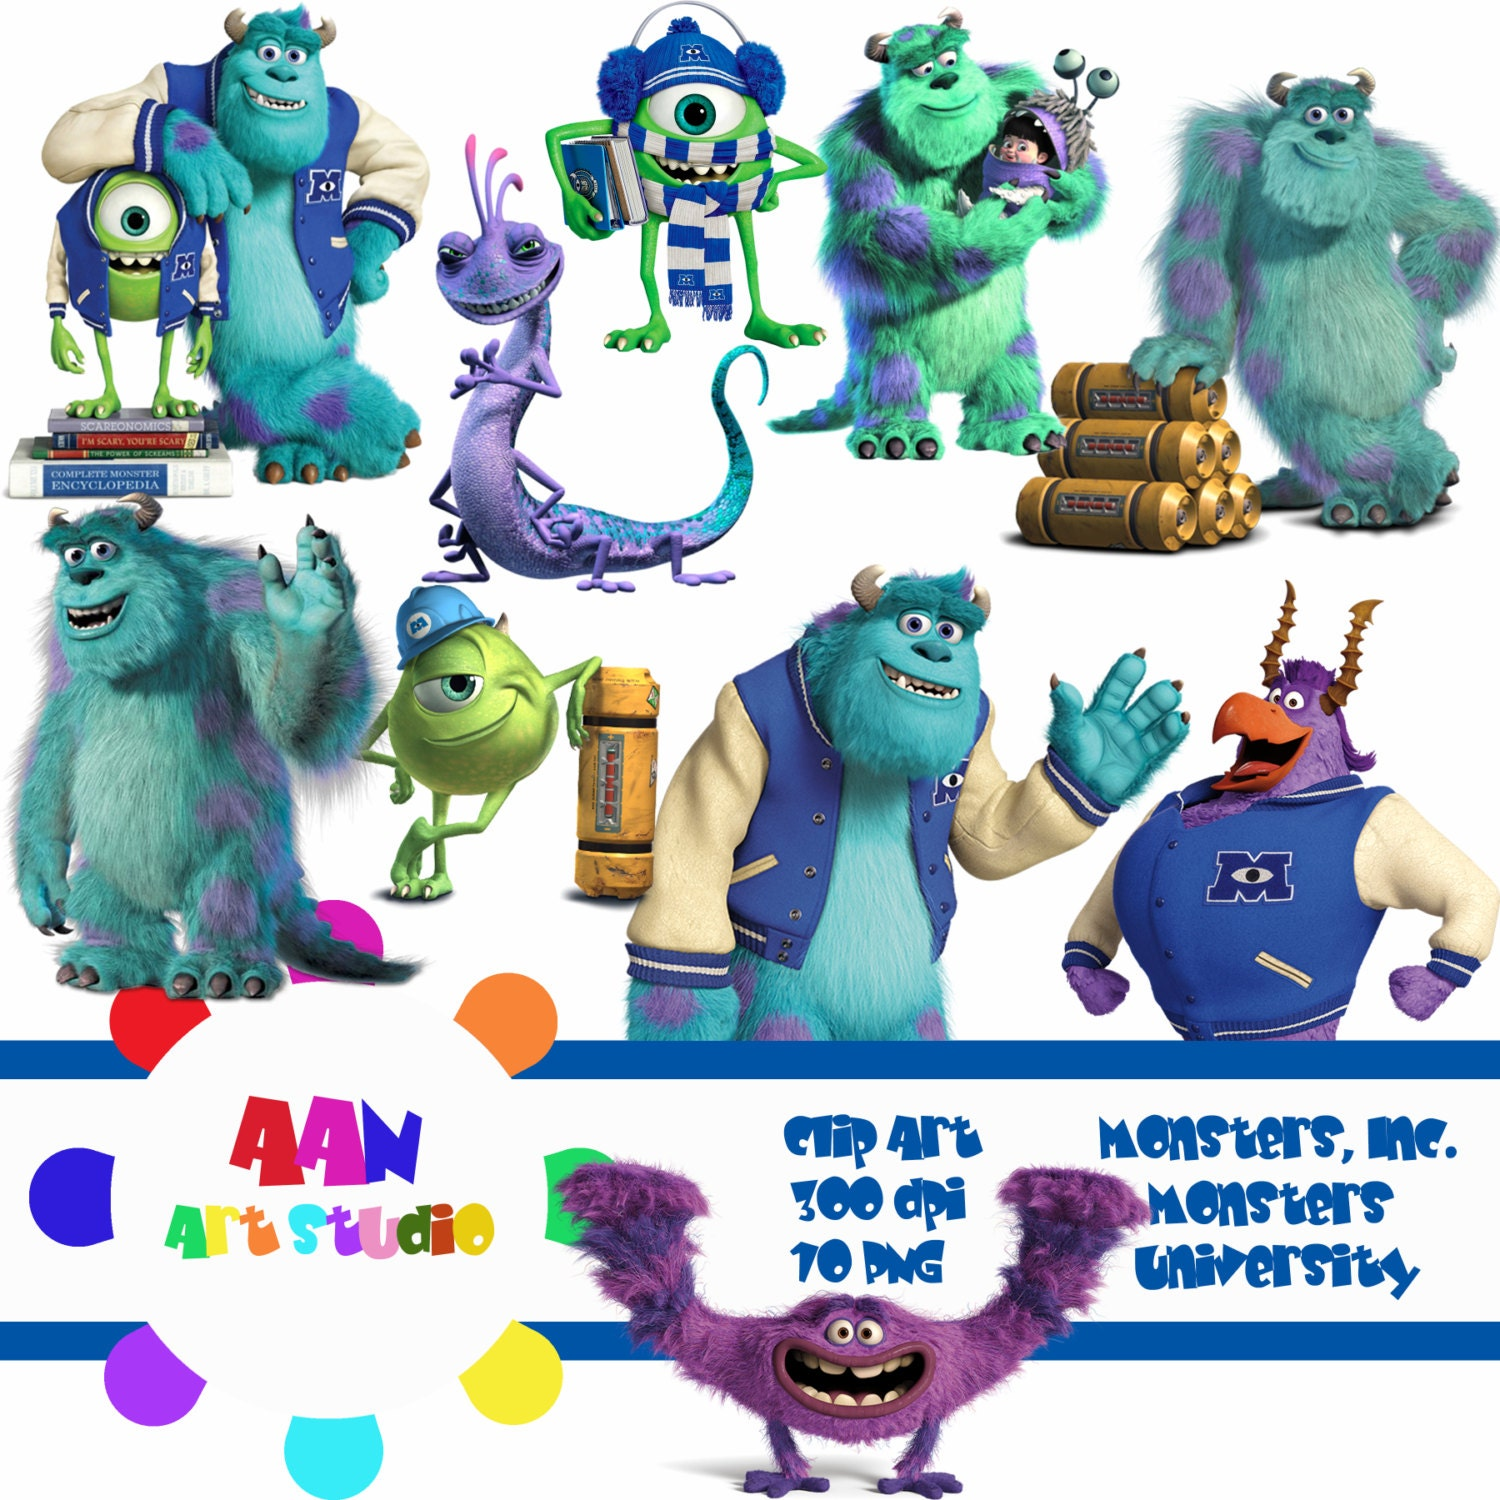 Monsters Inc Invitation for adorable invitation template